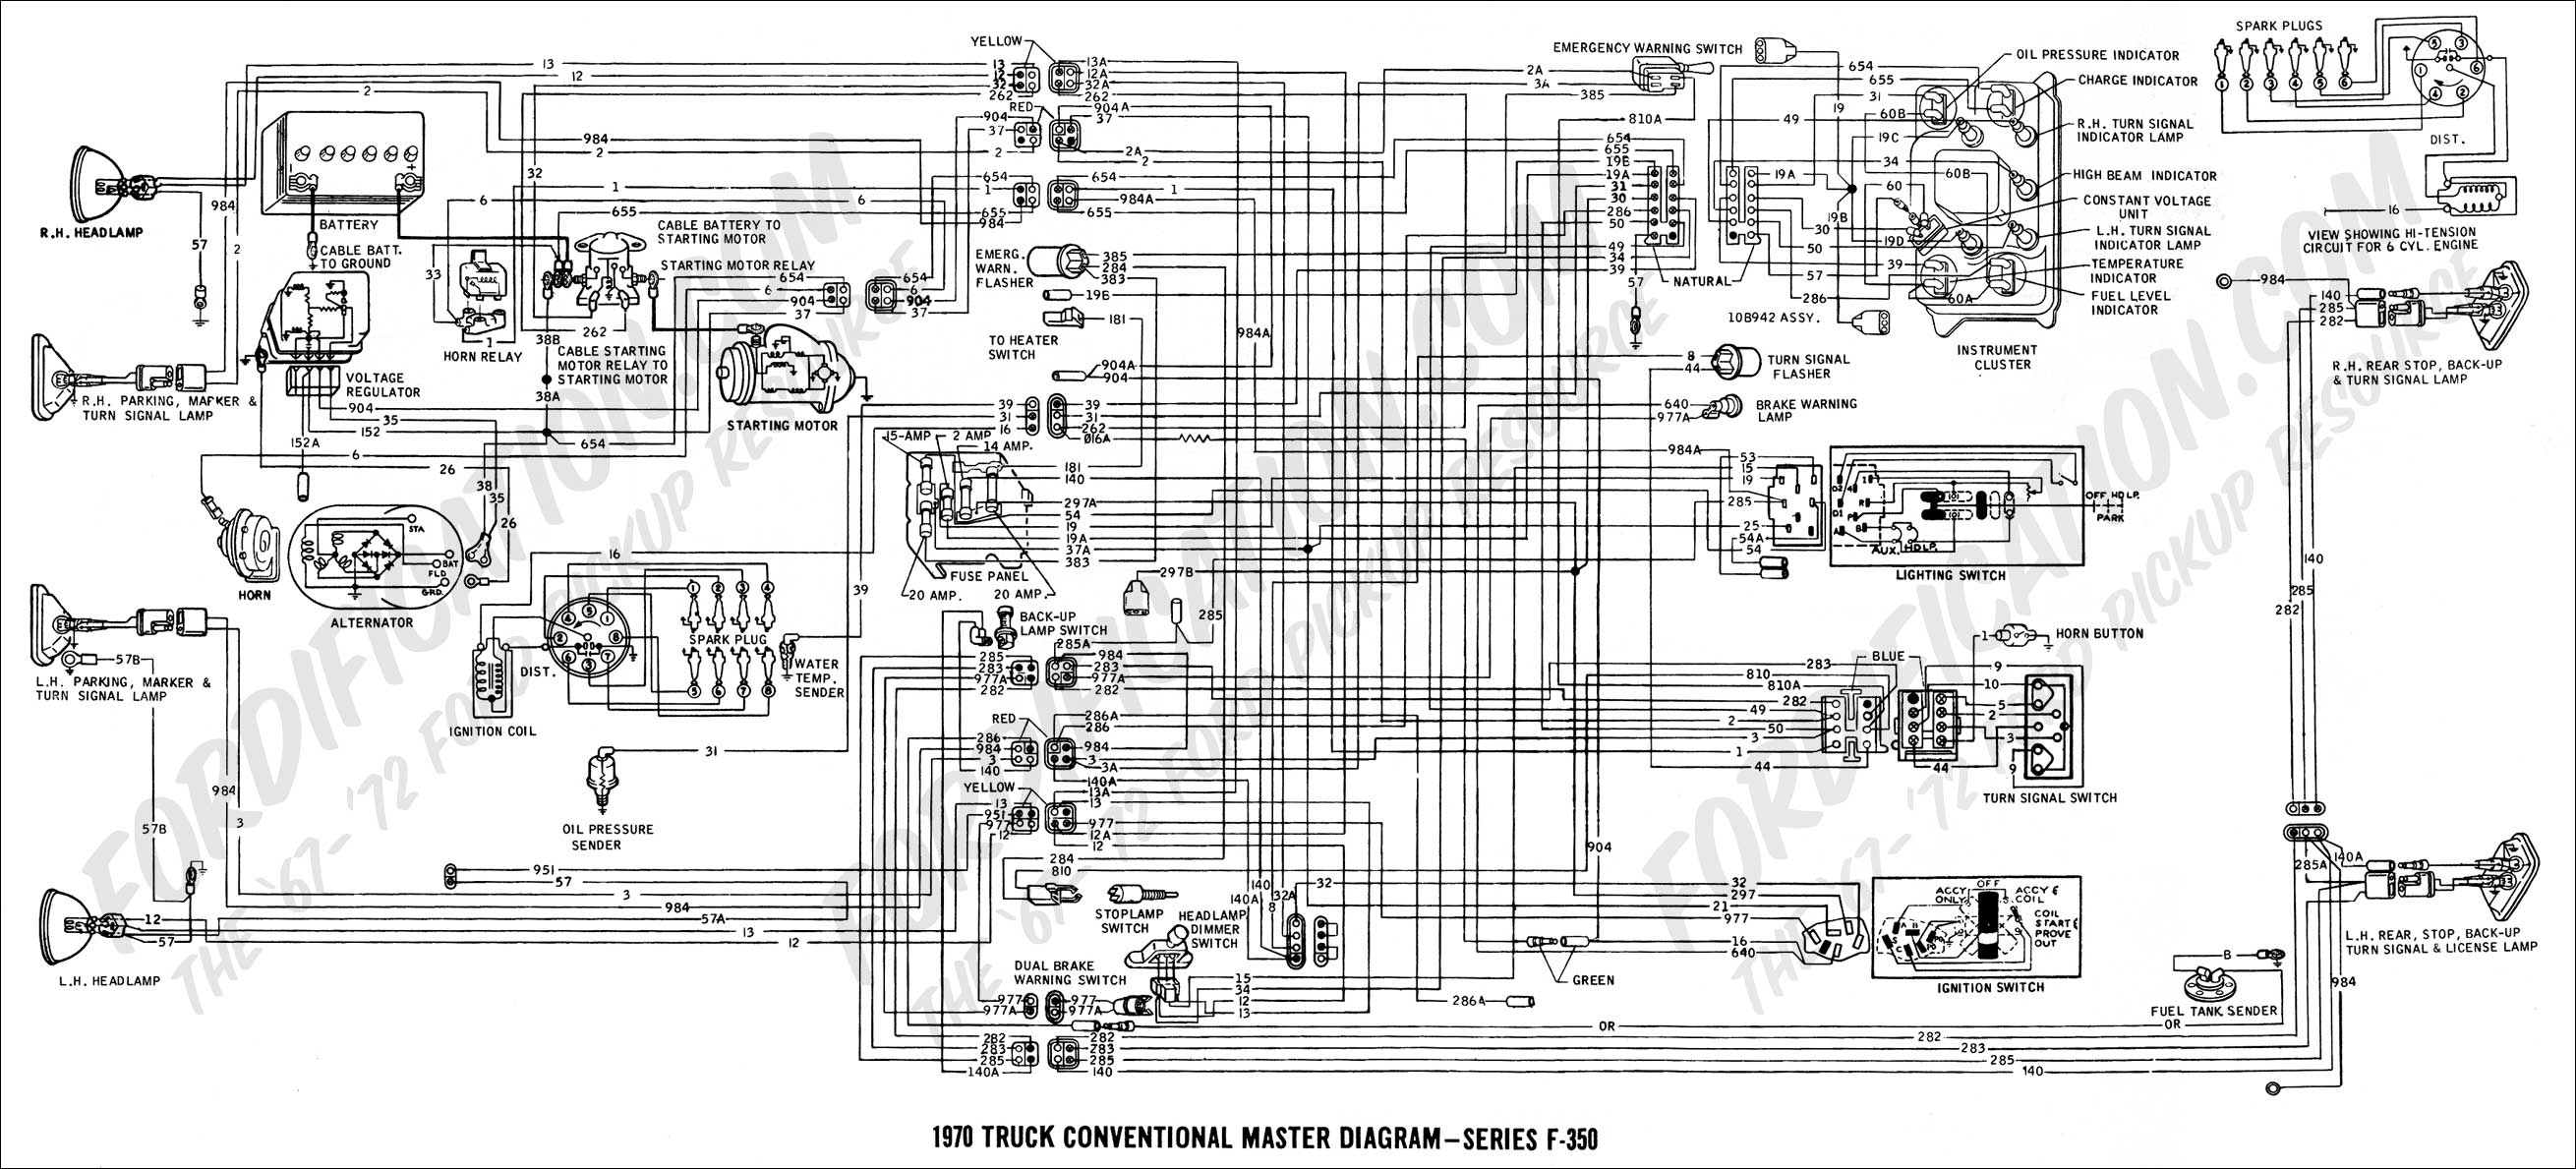 7 Pin Wiring Diagram Ford 2003 F350 - 3.xqw.capecoral ...